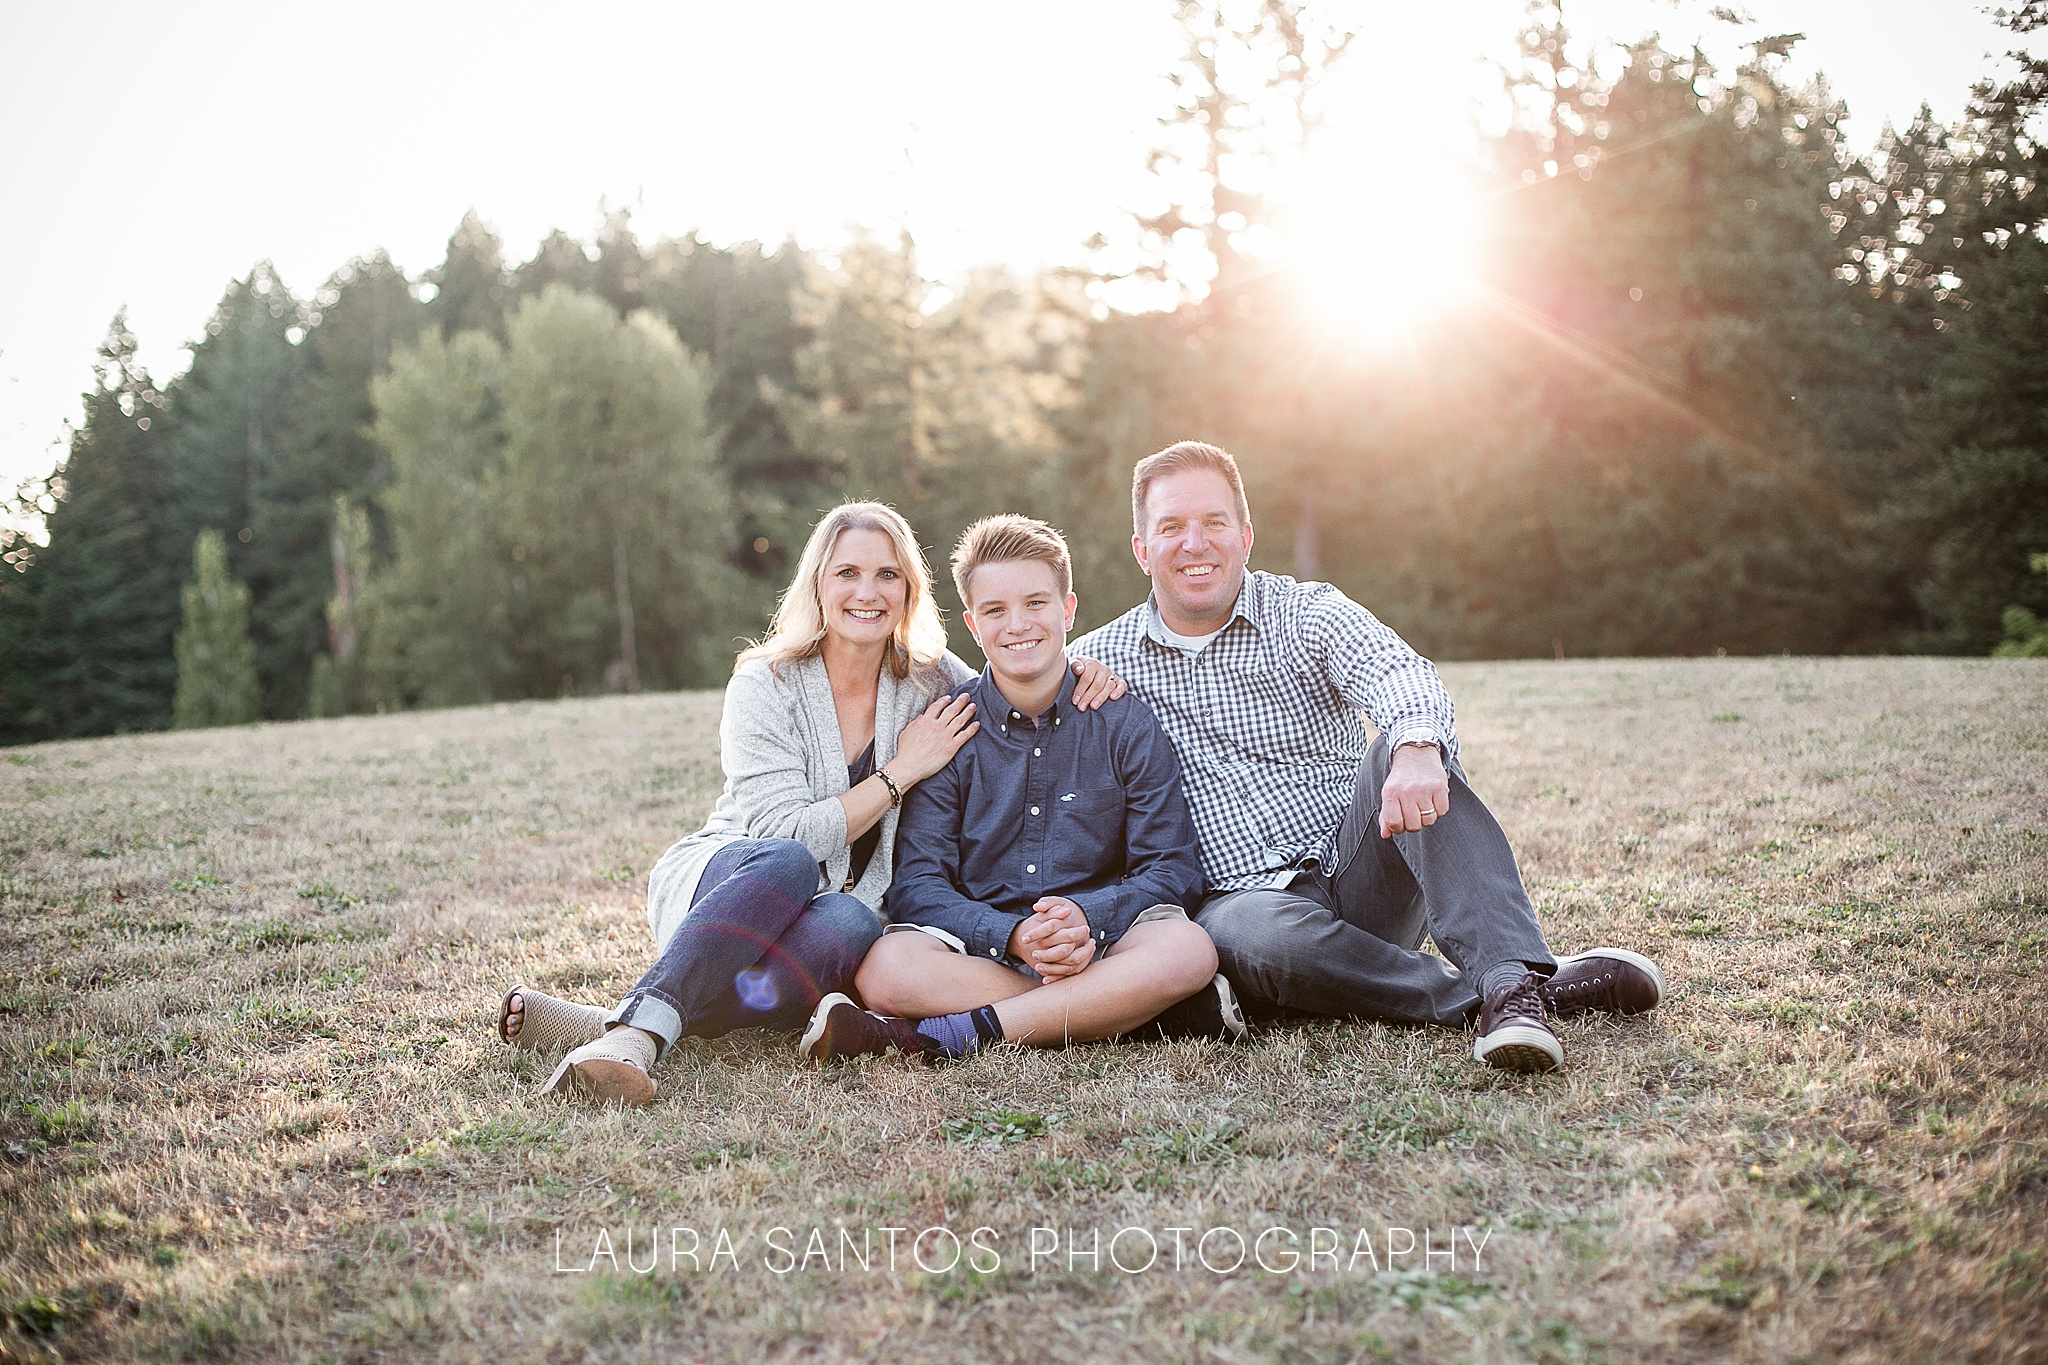 Laura Santos Photography Portland Oregon Family Photographer_0786.jpg